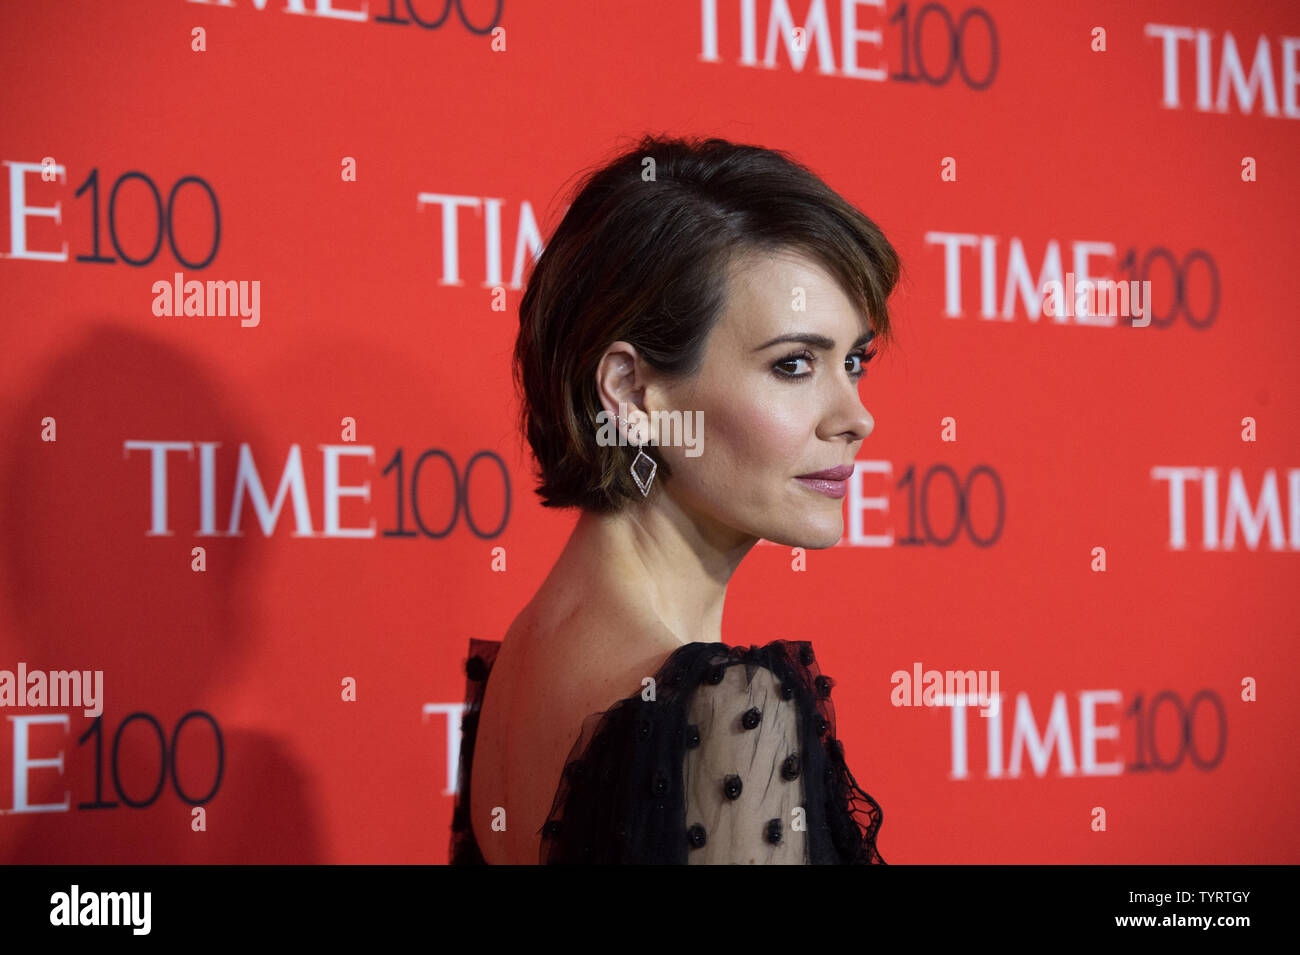 Sarah Paulson arrives on the red carpet at the TIME 100 Gala at